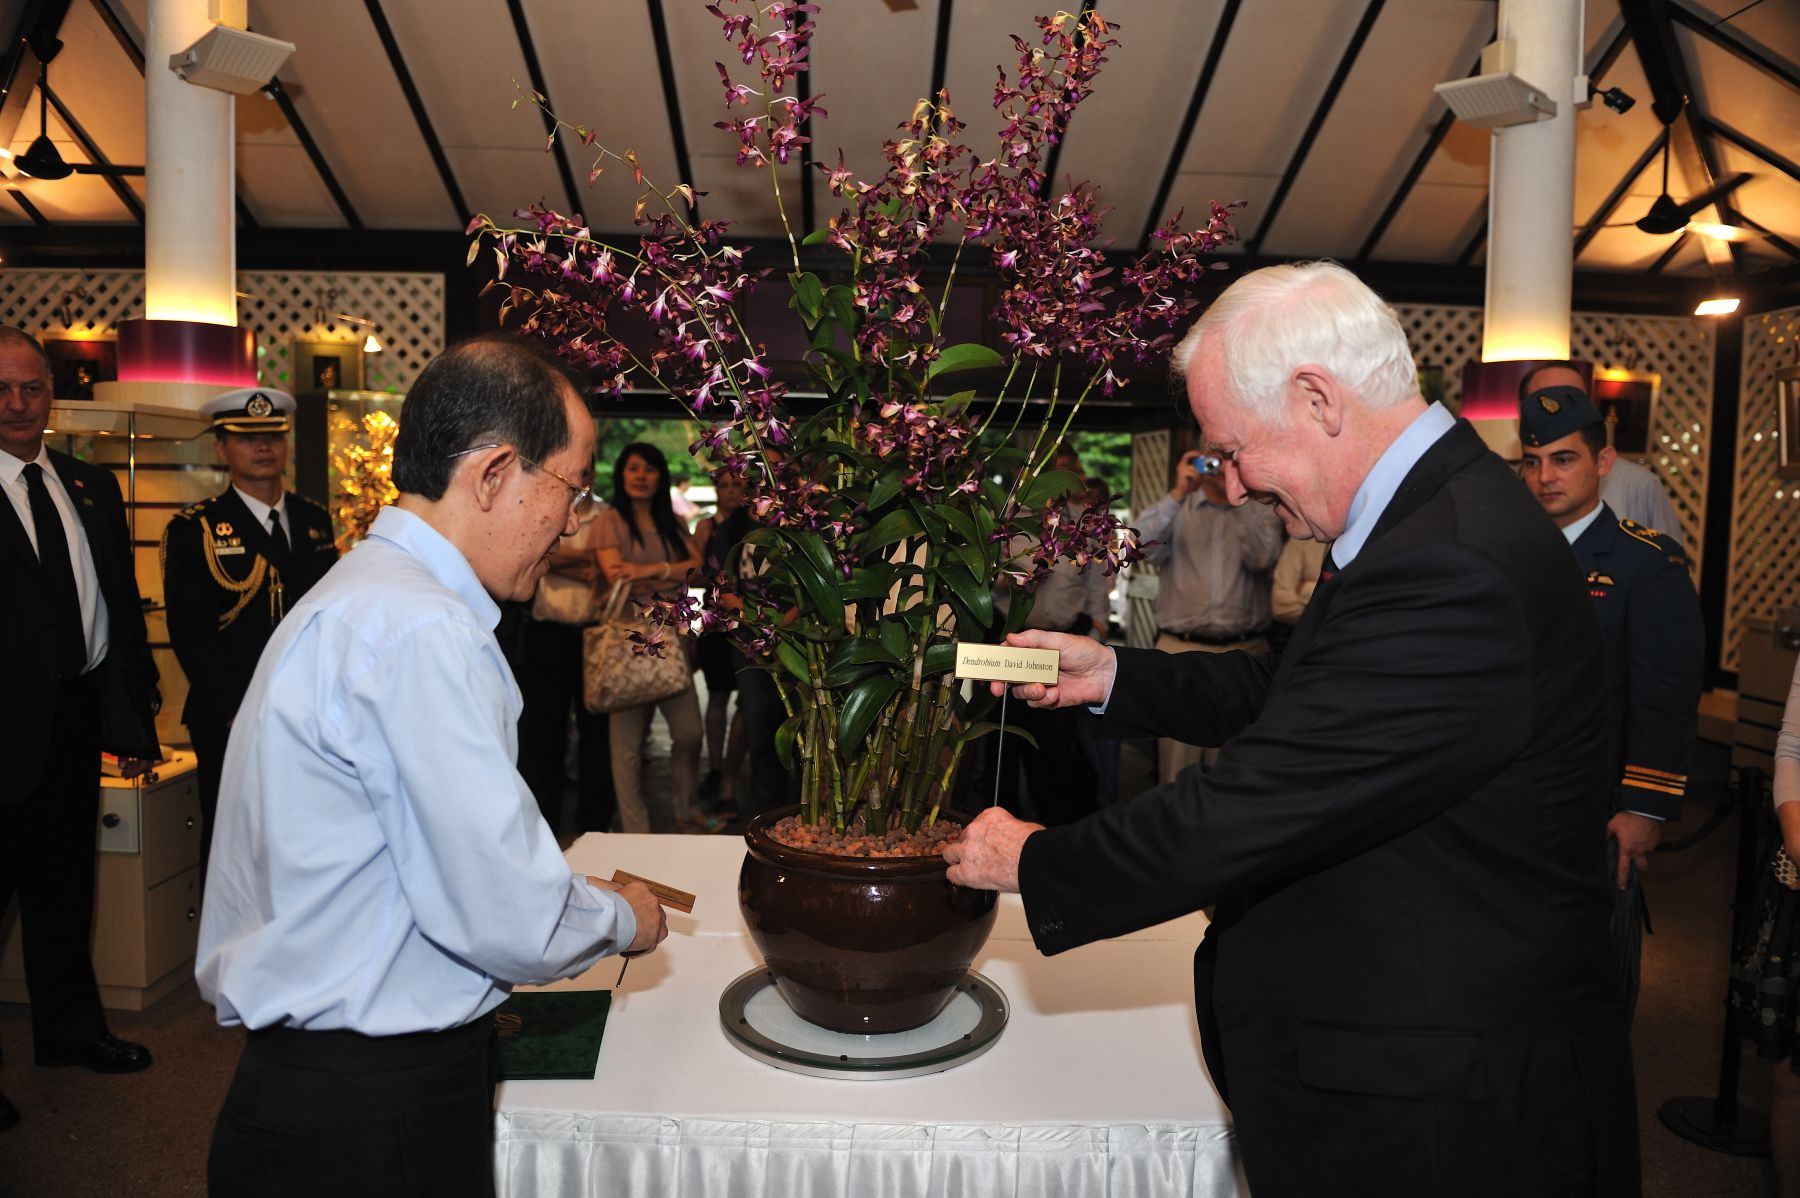 In honour of His Excellency David Johnston's visit to the country, the Government of Singapore named an orchid after him during a ceremony at Singapore's famed National Orchid Garden. His Excellency was presented with the name of the orchid by Dr.Leong Chee Chiew, Deputy Chief Executive Officer and Commissioner of Parks and Recreation.